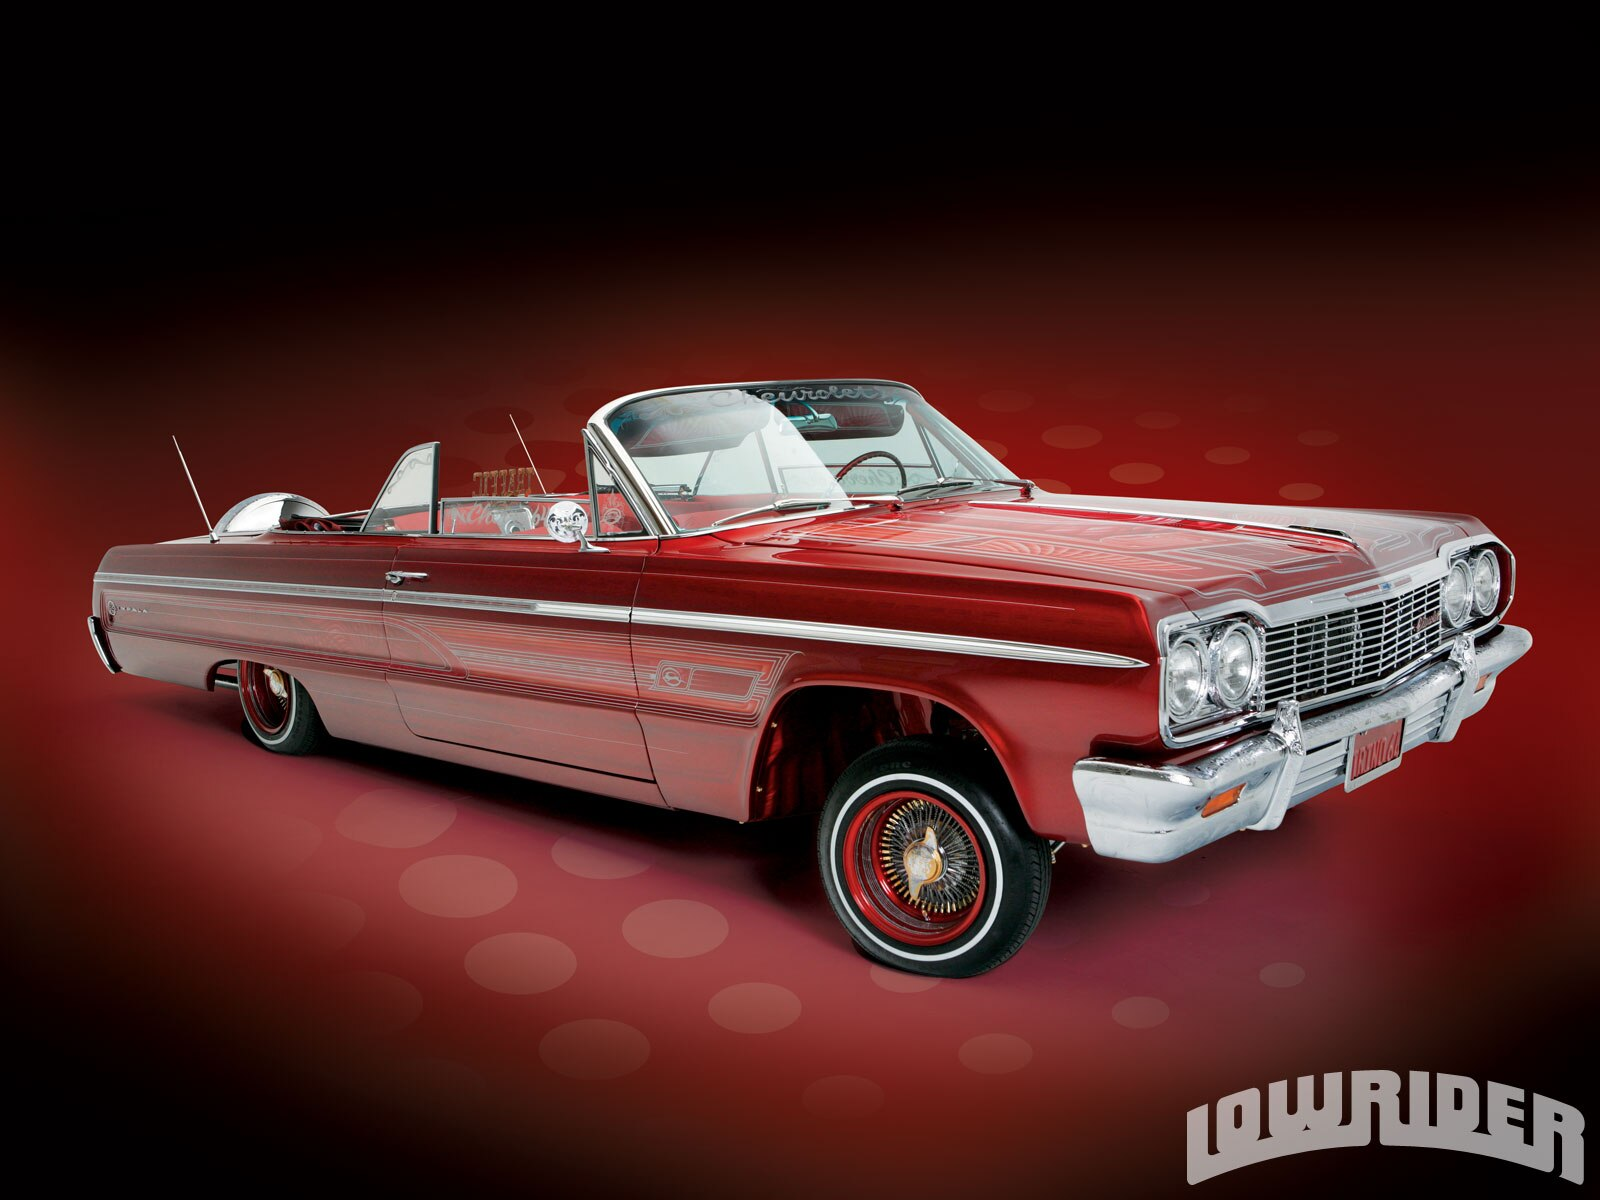 lrmp-1007-03-o-1964-chevy-impala-ss-convertible-front4